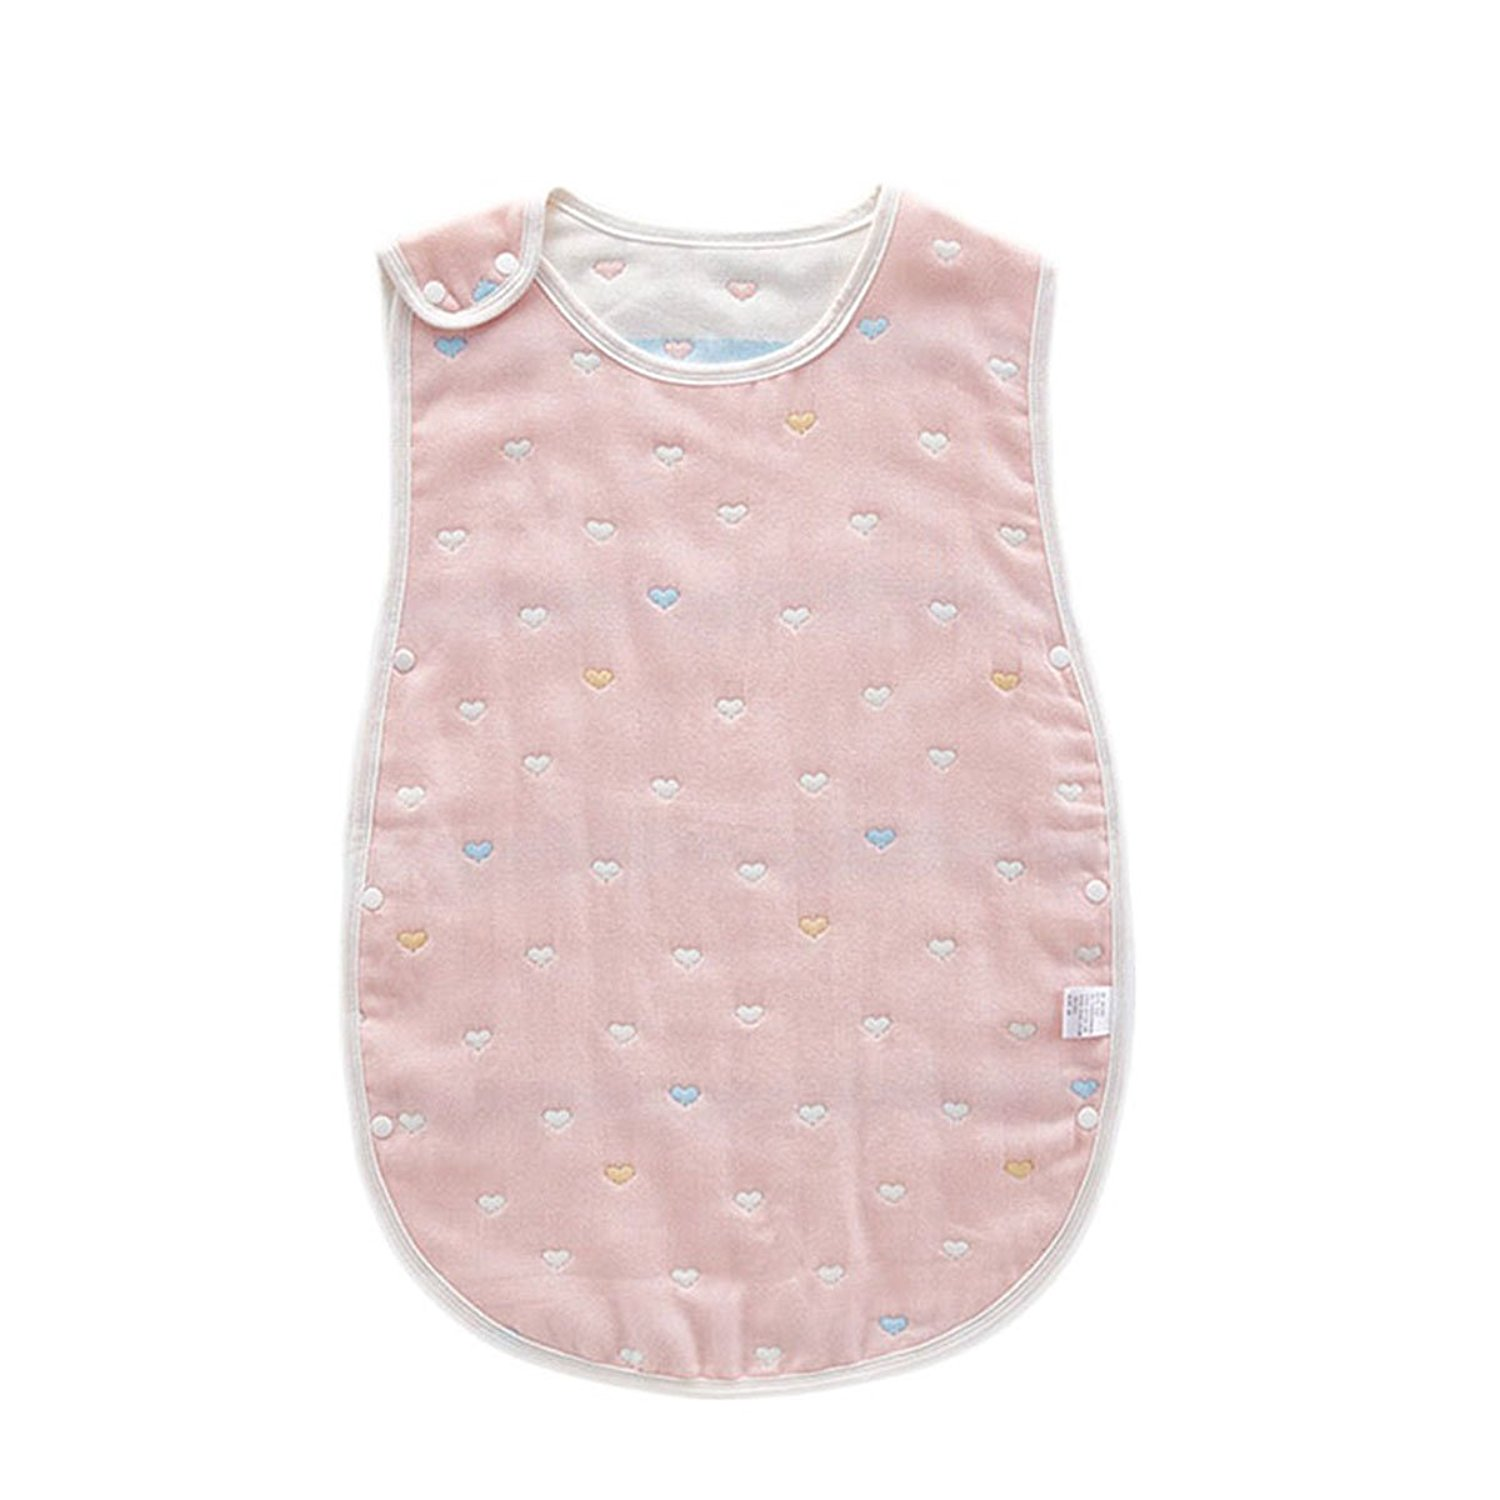 7687f91545a Get Quotations · Cytsj Comfortable Cute Baby Gauze Sleeping Bag